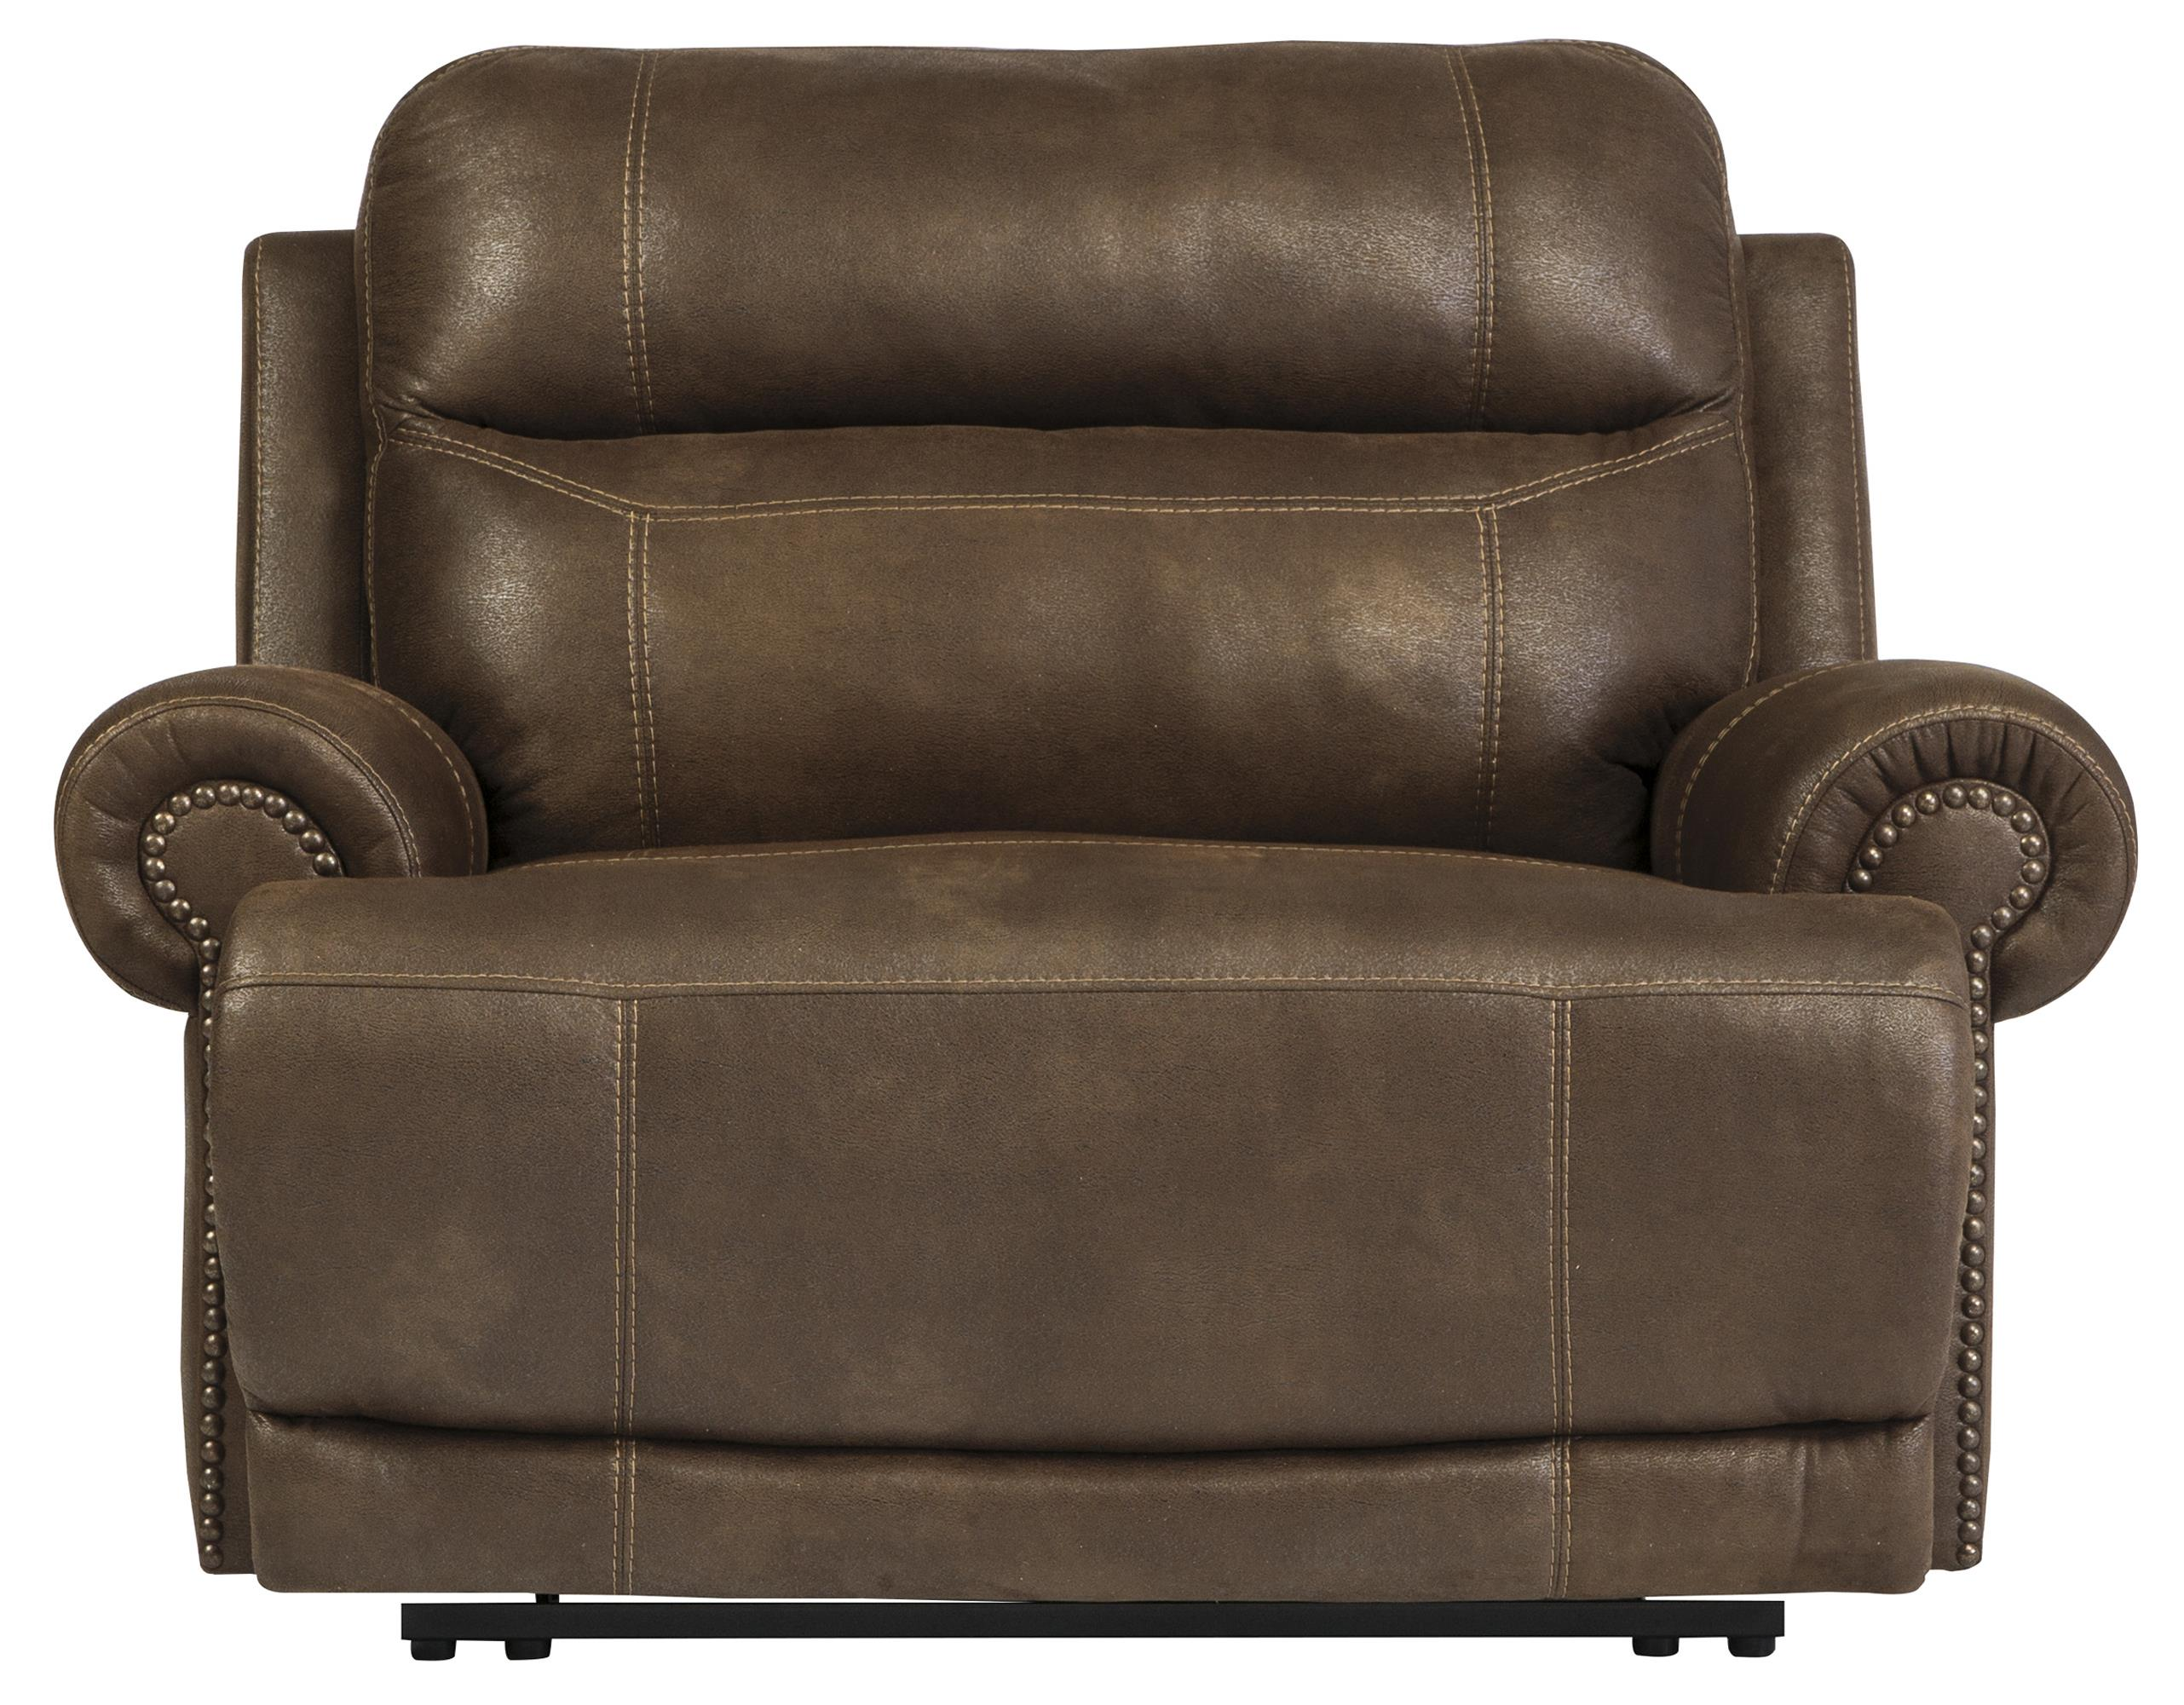 Signature Design by Ashley Austere - Brown Zero Wall Recliner - Item Number: 3840052